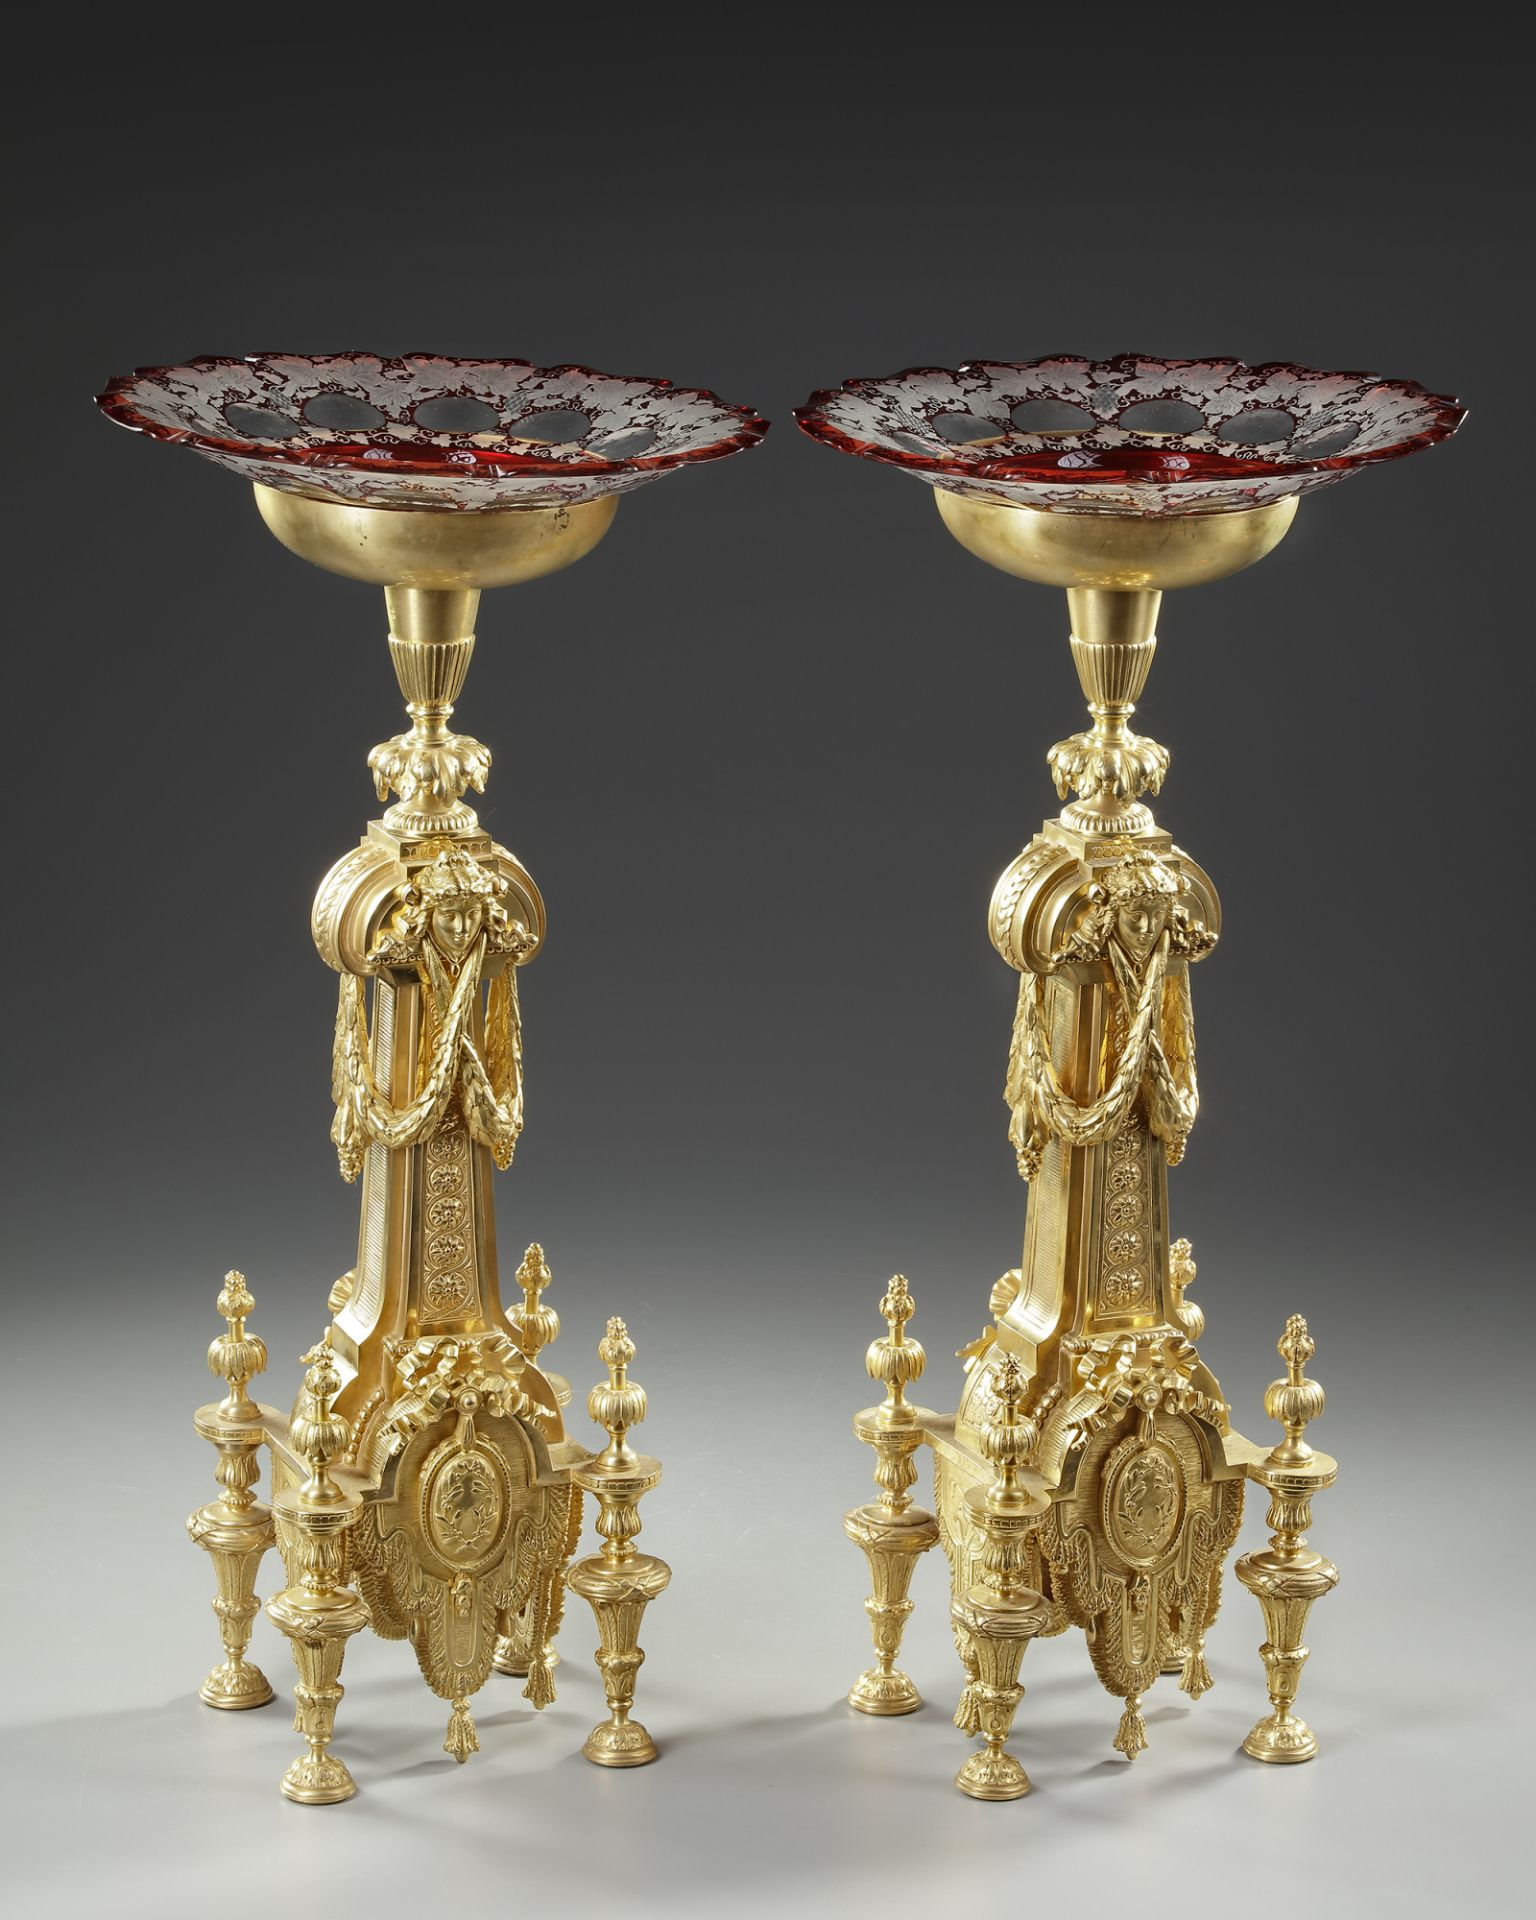 A PAIR OF ORMOLU CENTERPIECES, FRANCE, 19TH CENTURY - Image 3 of 4